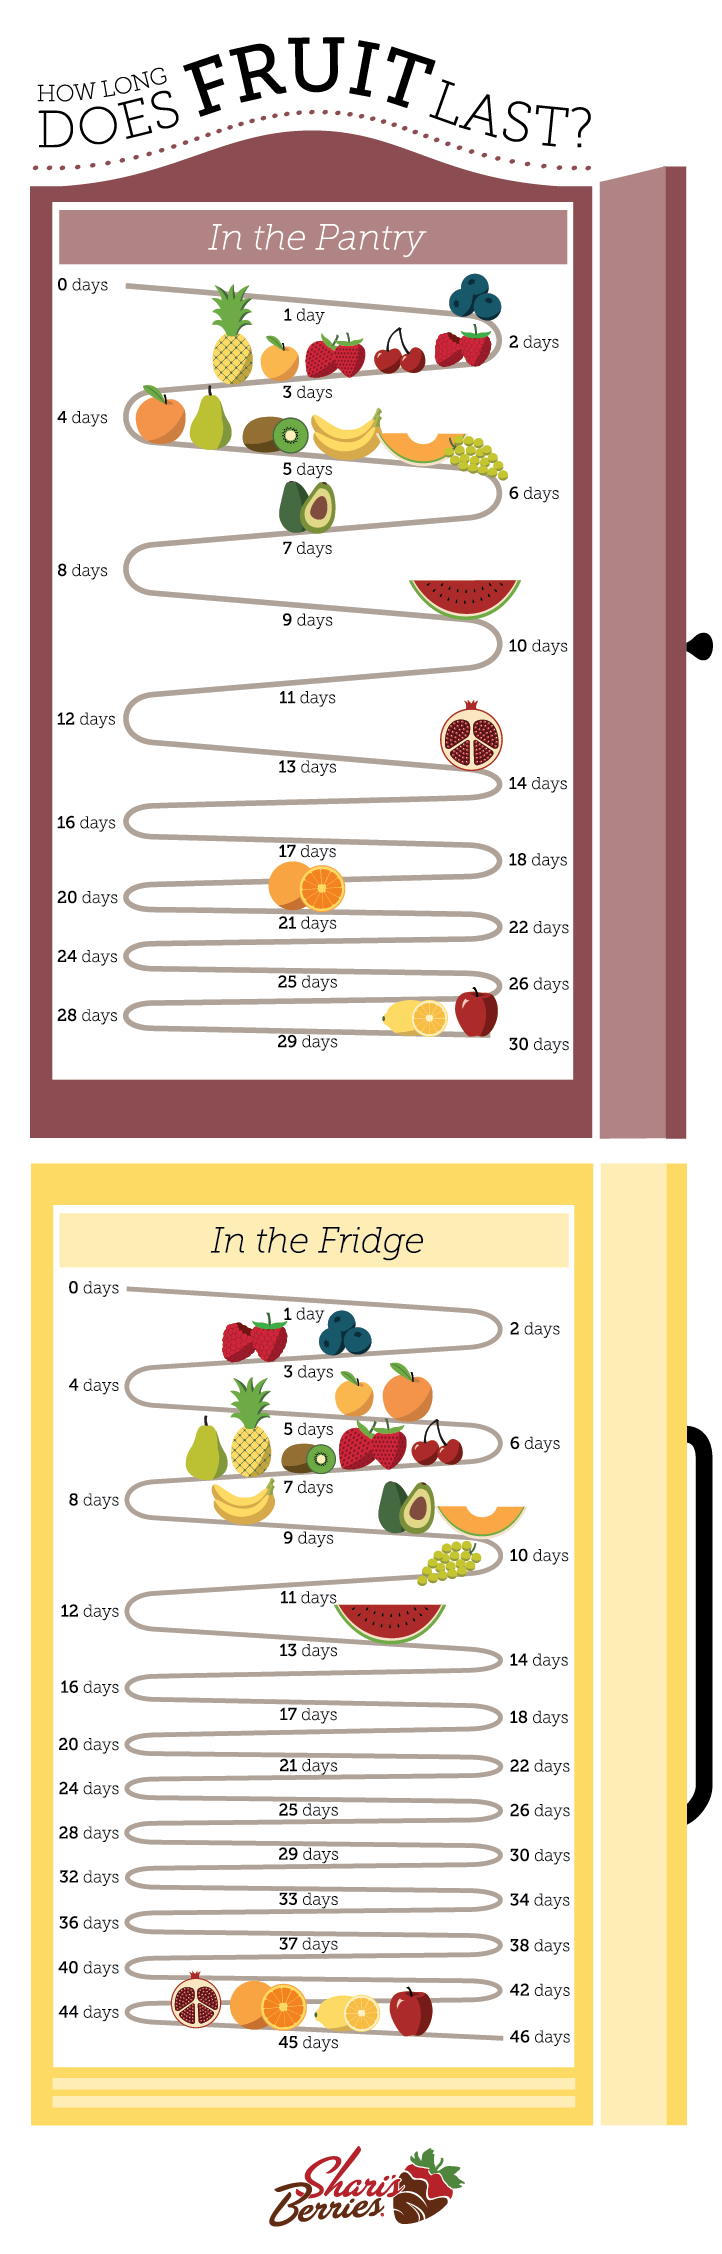 Graphic of how long fruit lasts by Shari